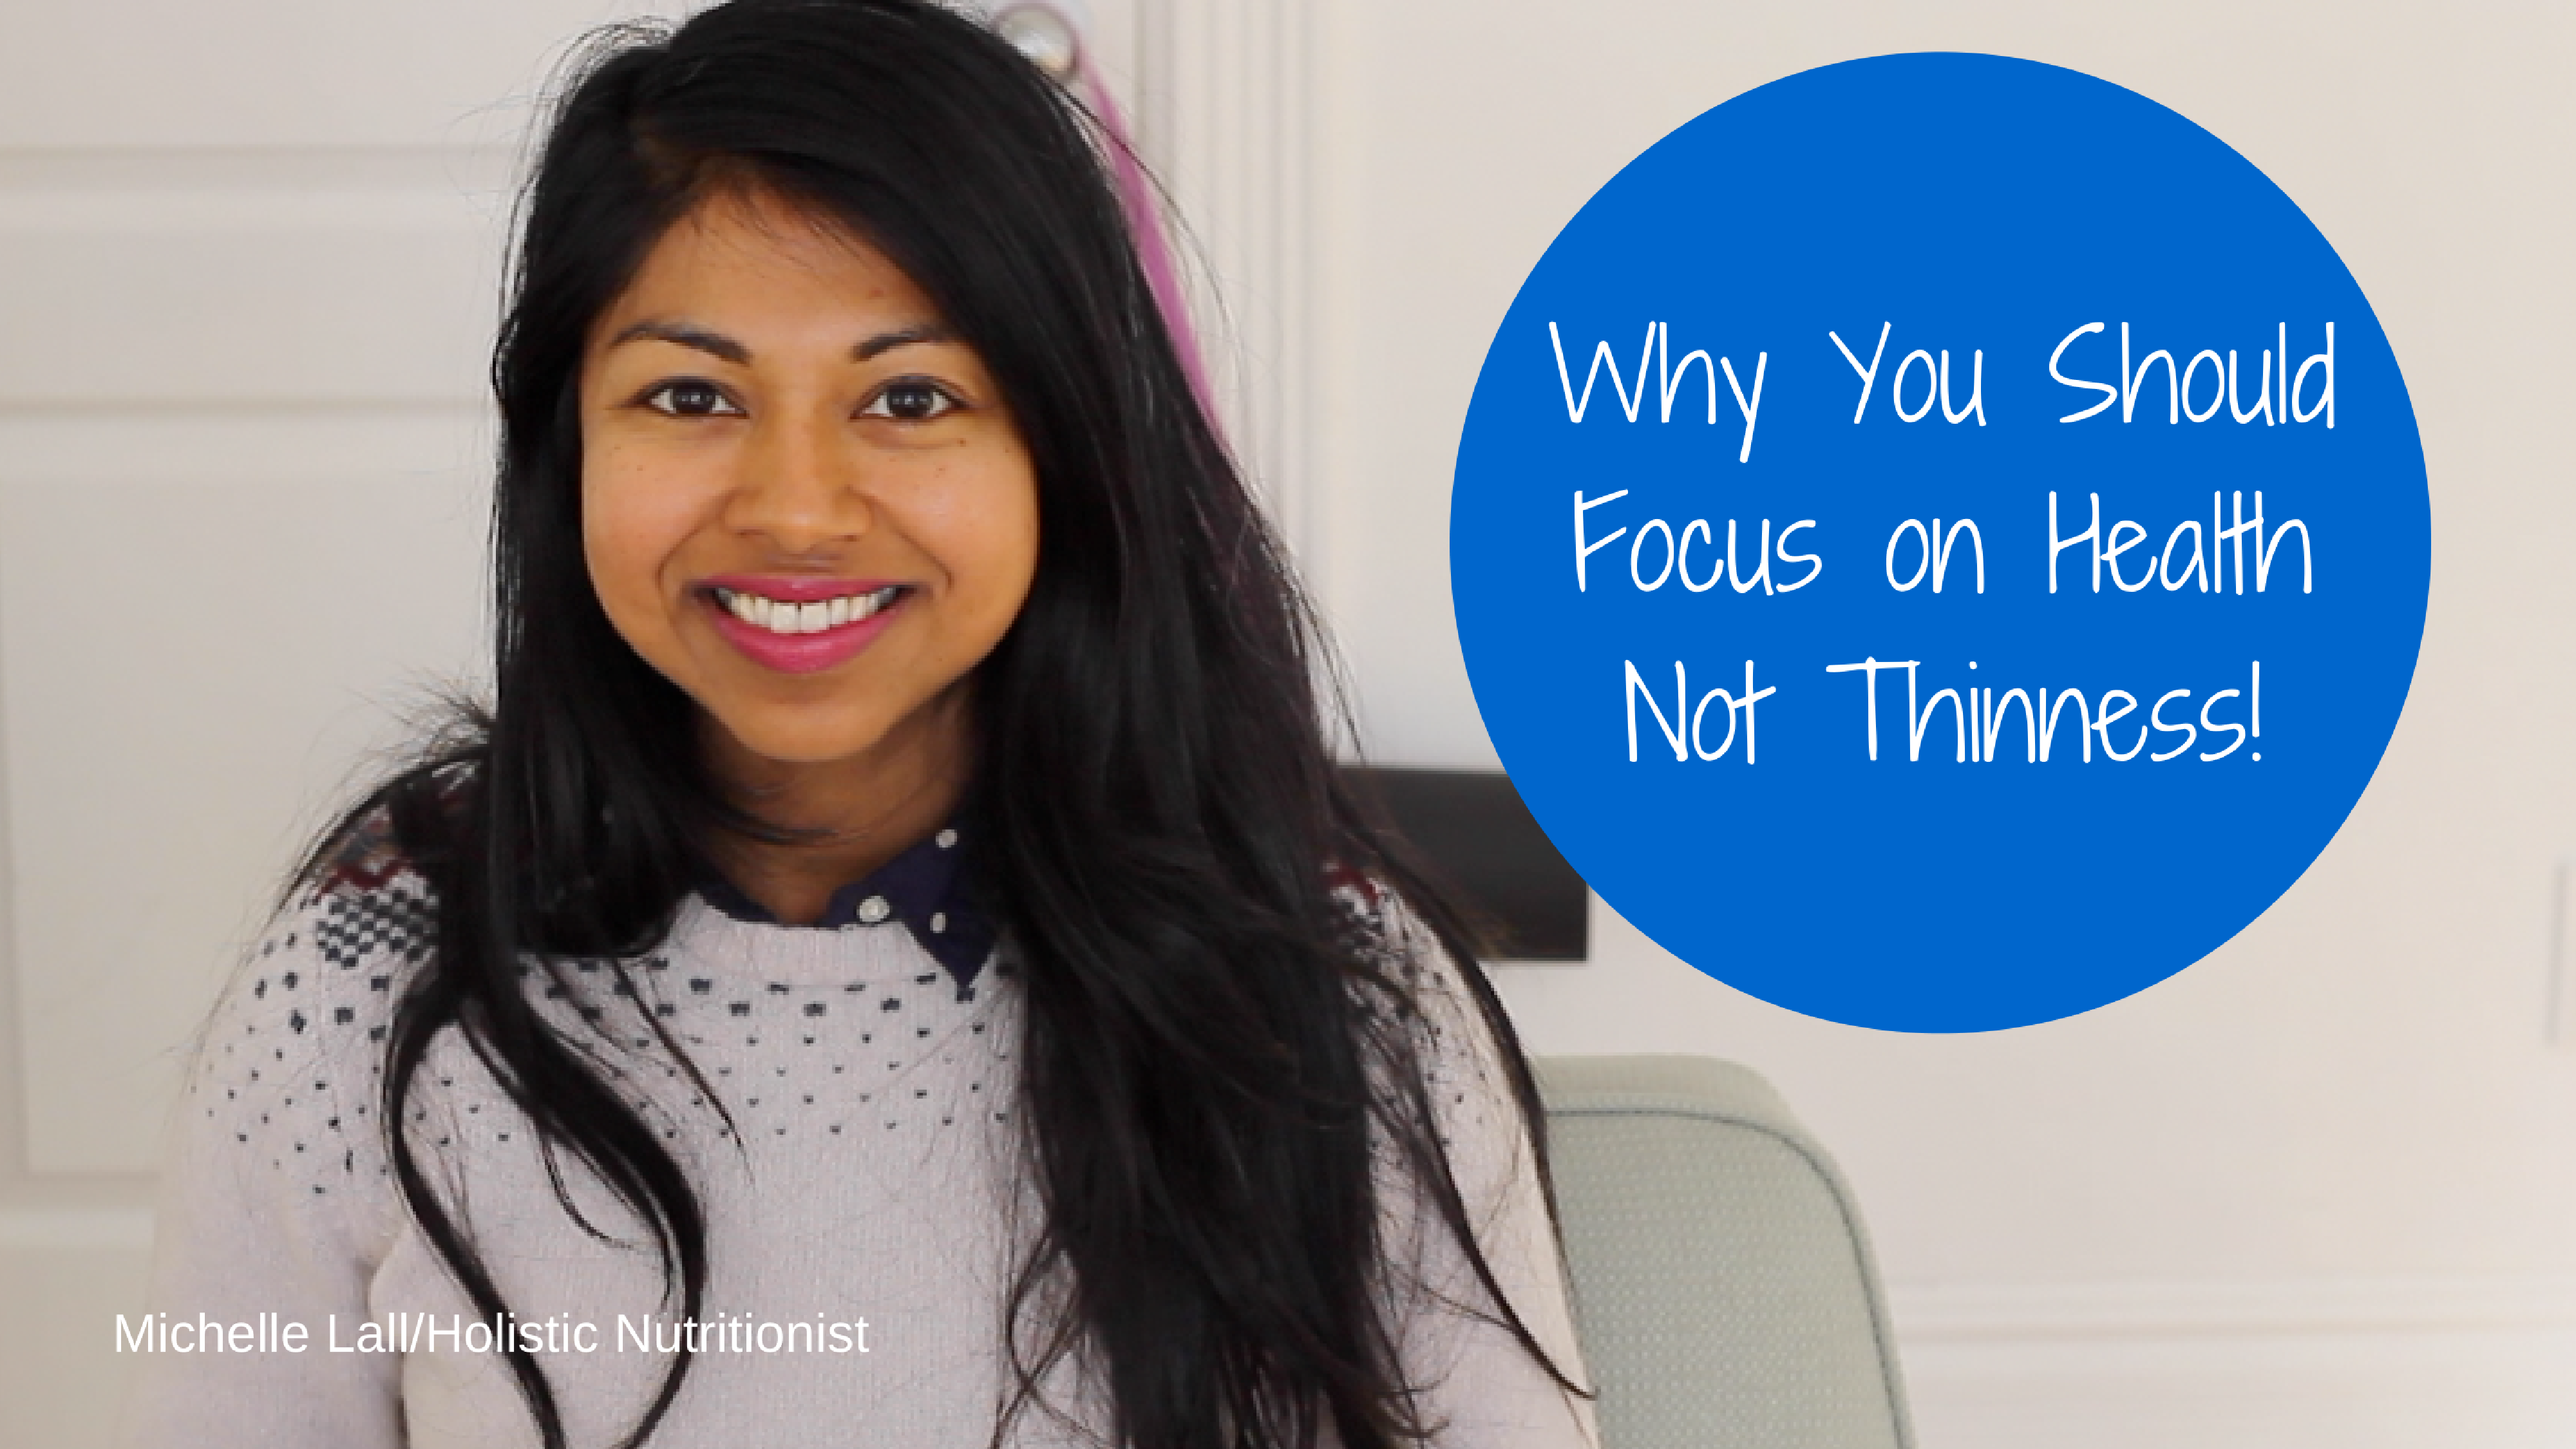 Why You Should Focus on Health Not Thinness!